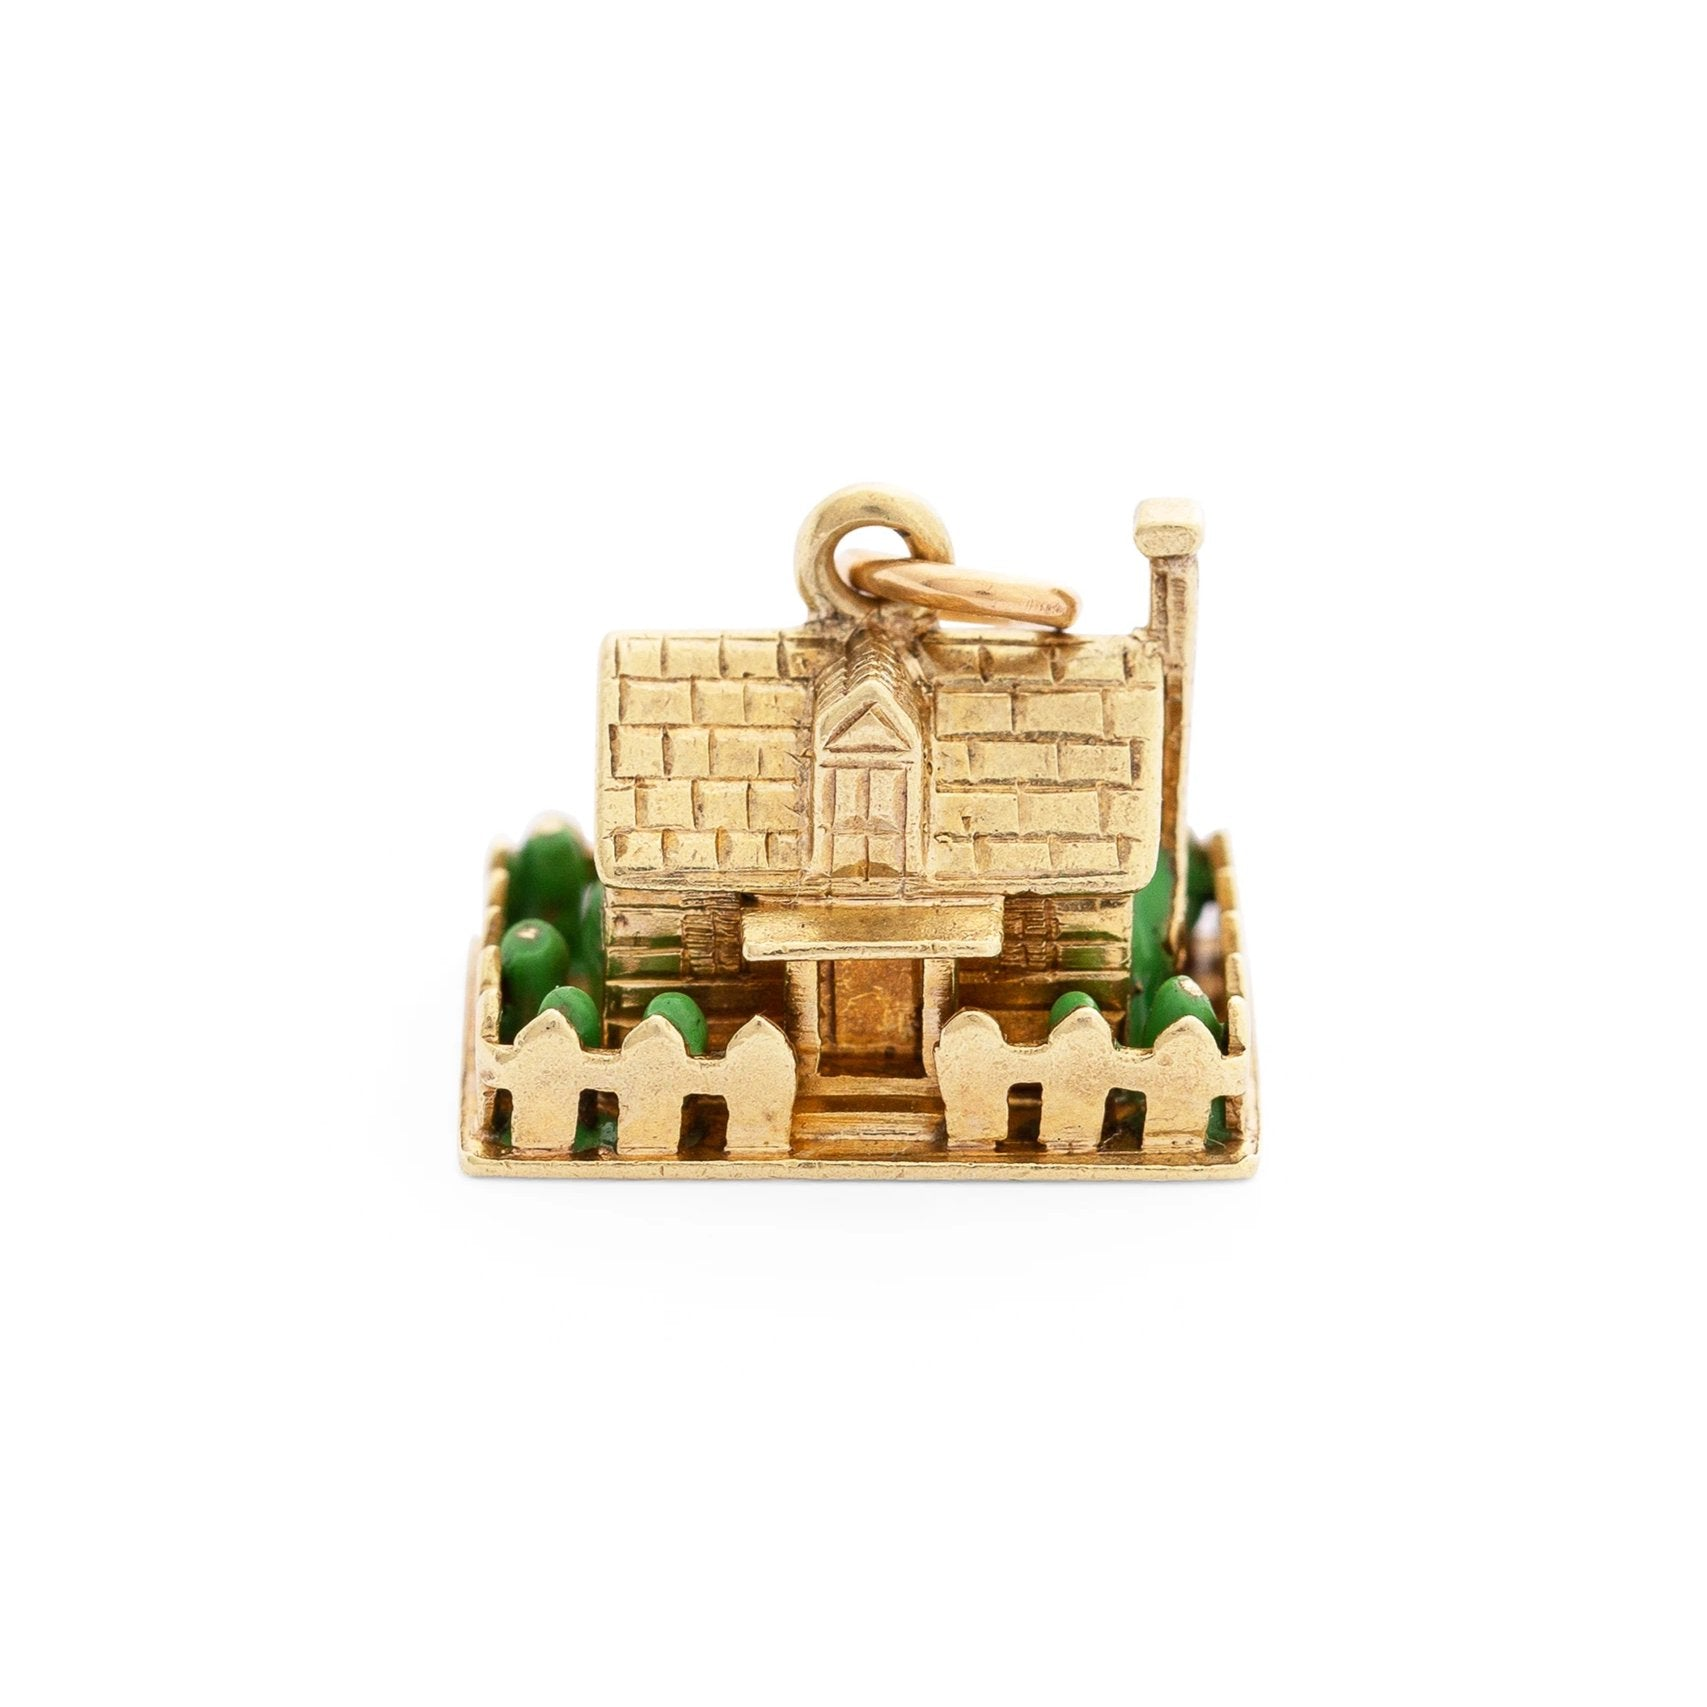 3-Dimensional House 14K Gold and Enamel